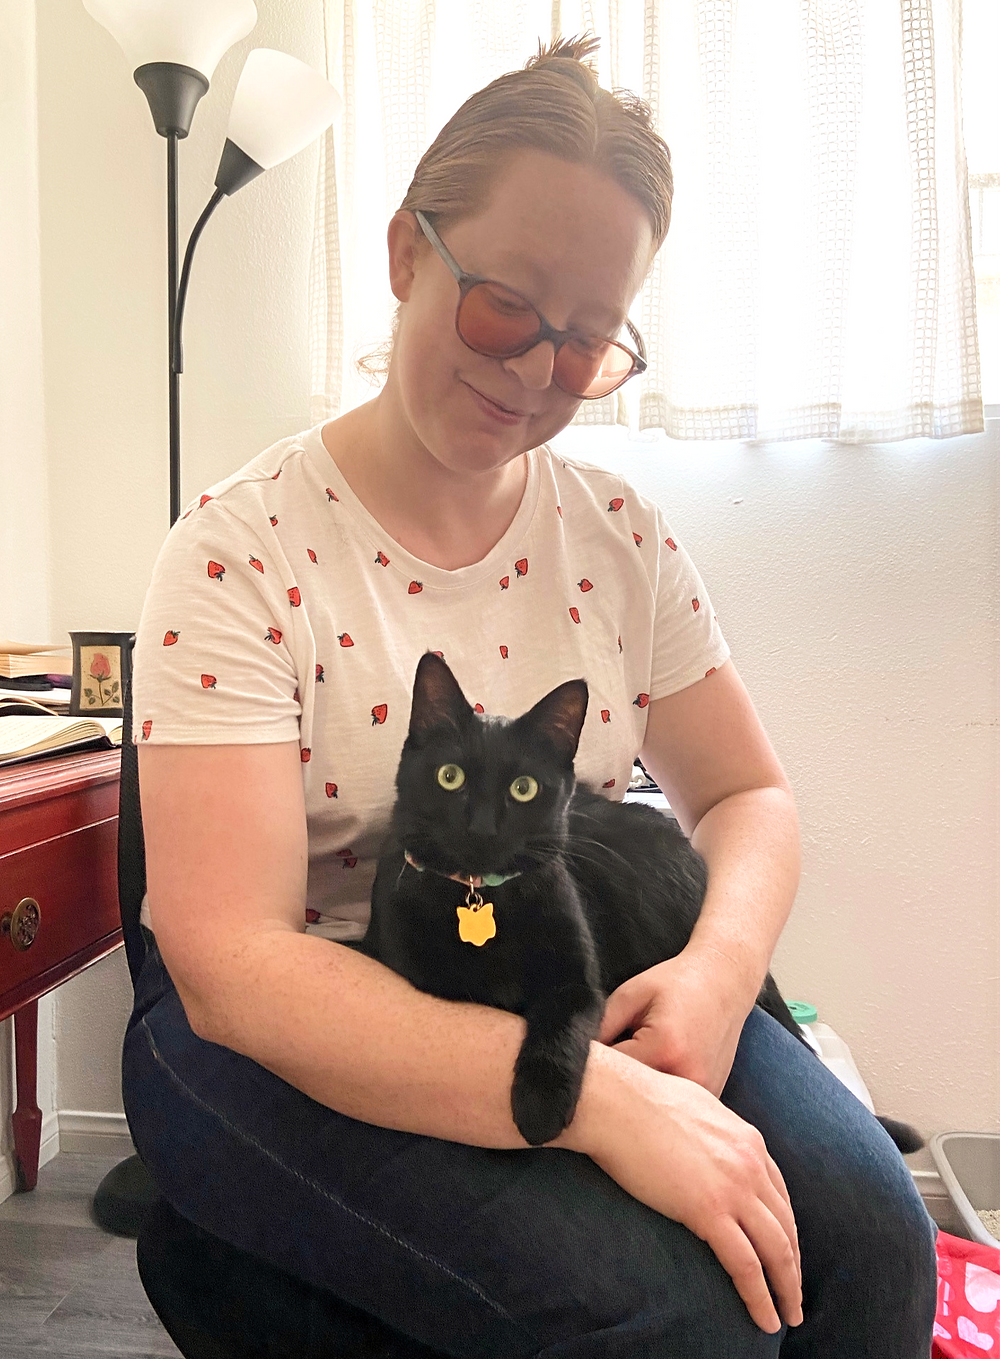 A black cat sits on Allie's lap with one paw over her arm, while Allie looks down on her smiling